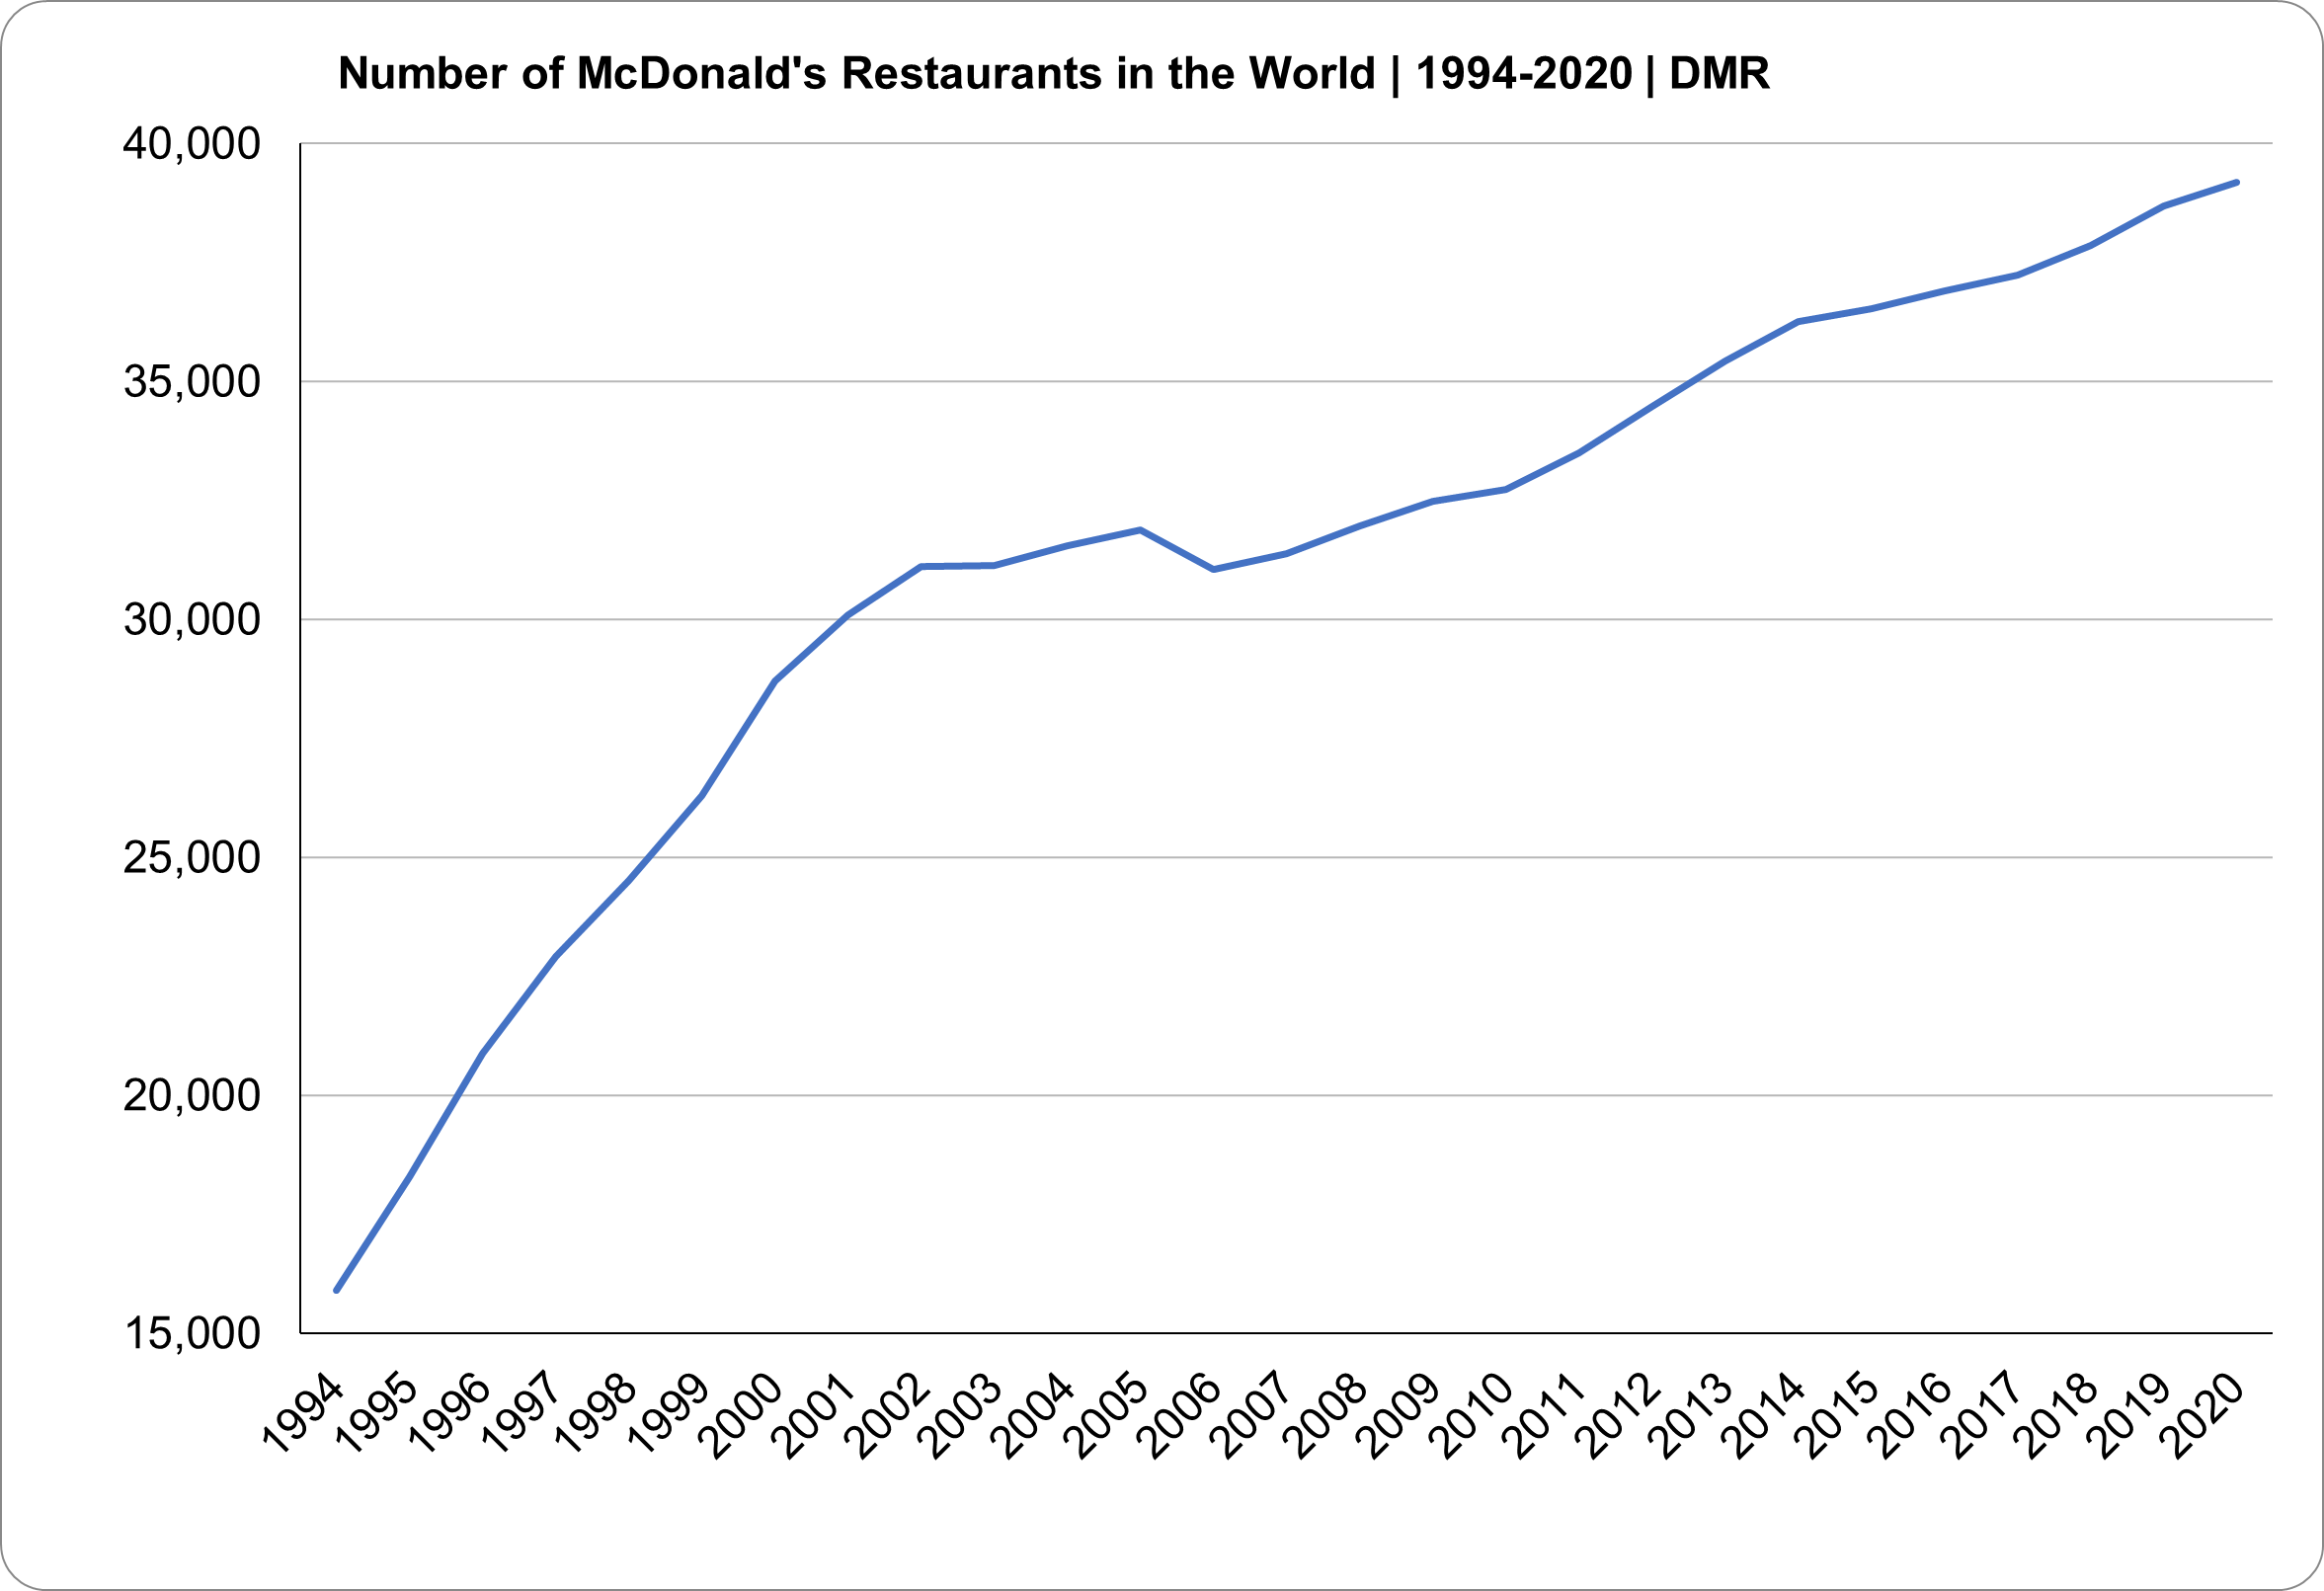 How many McDonalds are in the world?